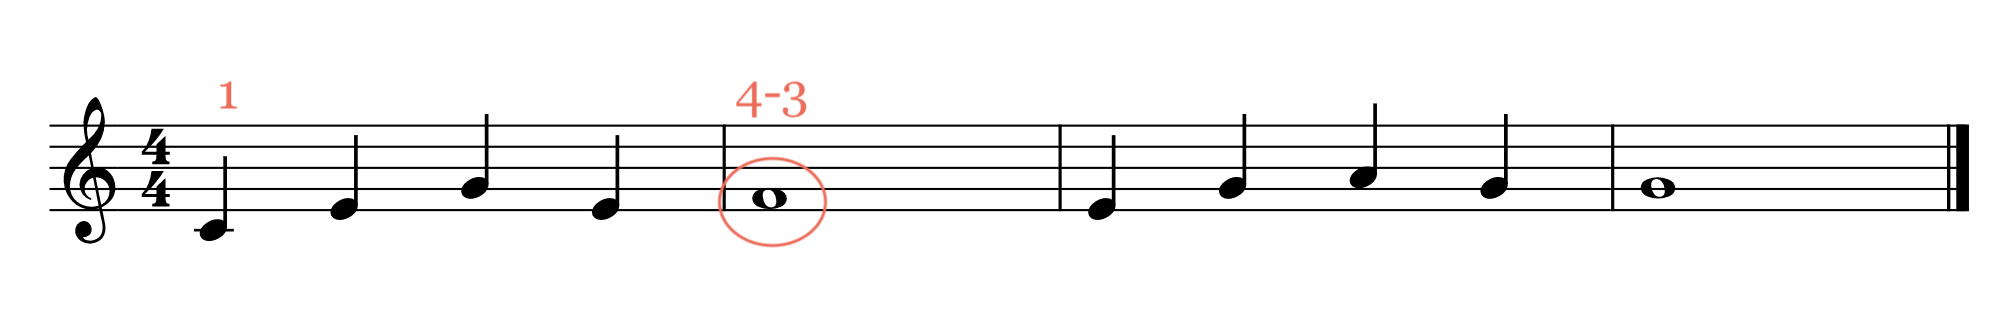 substituting fingers to change hand position